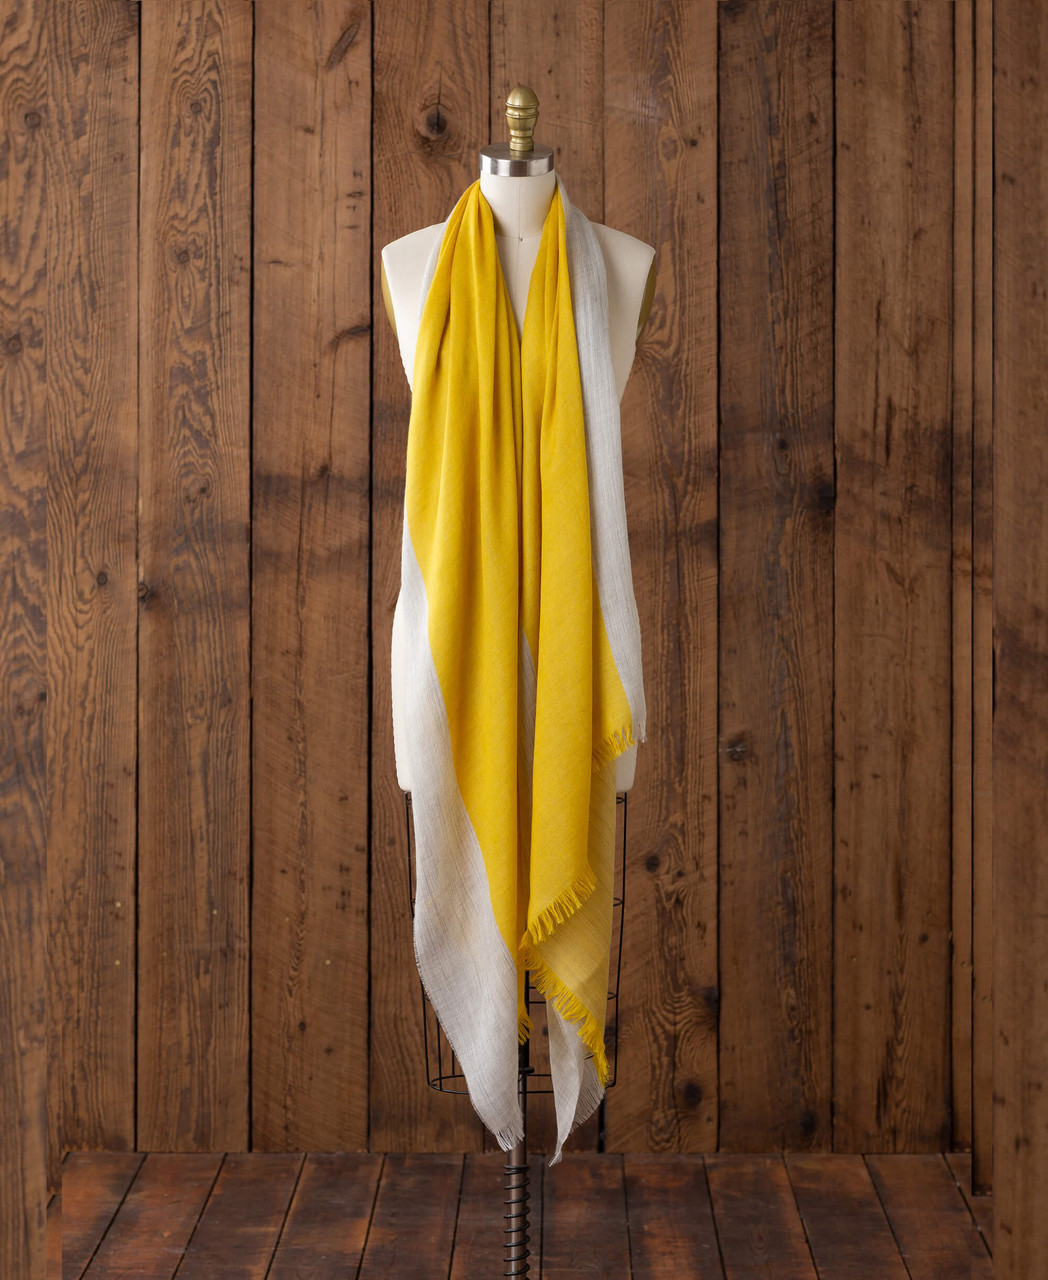 Alicia Adams Alpaca Alassio Wrap,  100 baby alpaca wrap, lightweight alpaca wrap, alpaca wrap, all fair-trade made, alpaca vs cashmere, light grey and yellow alpaca wrap